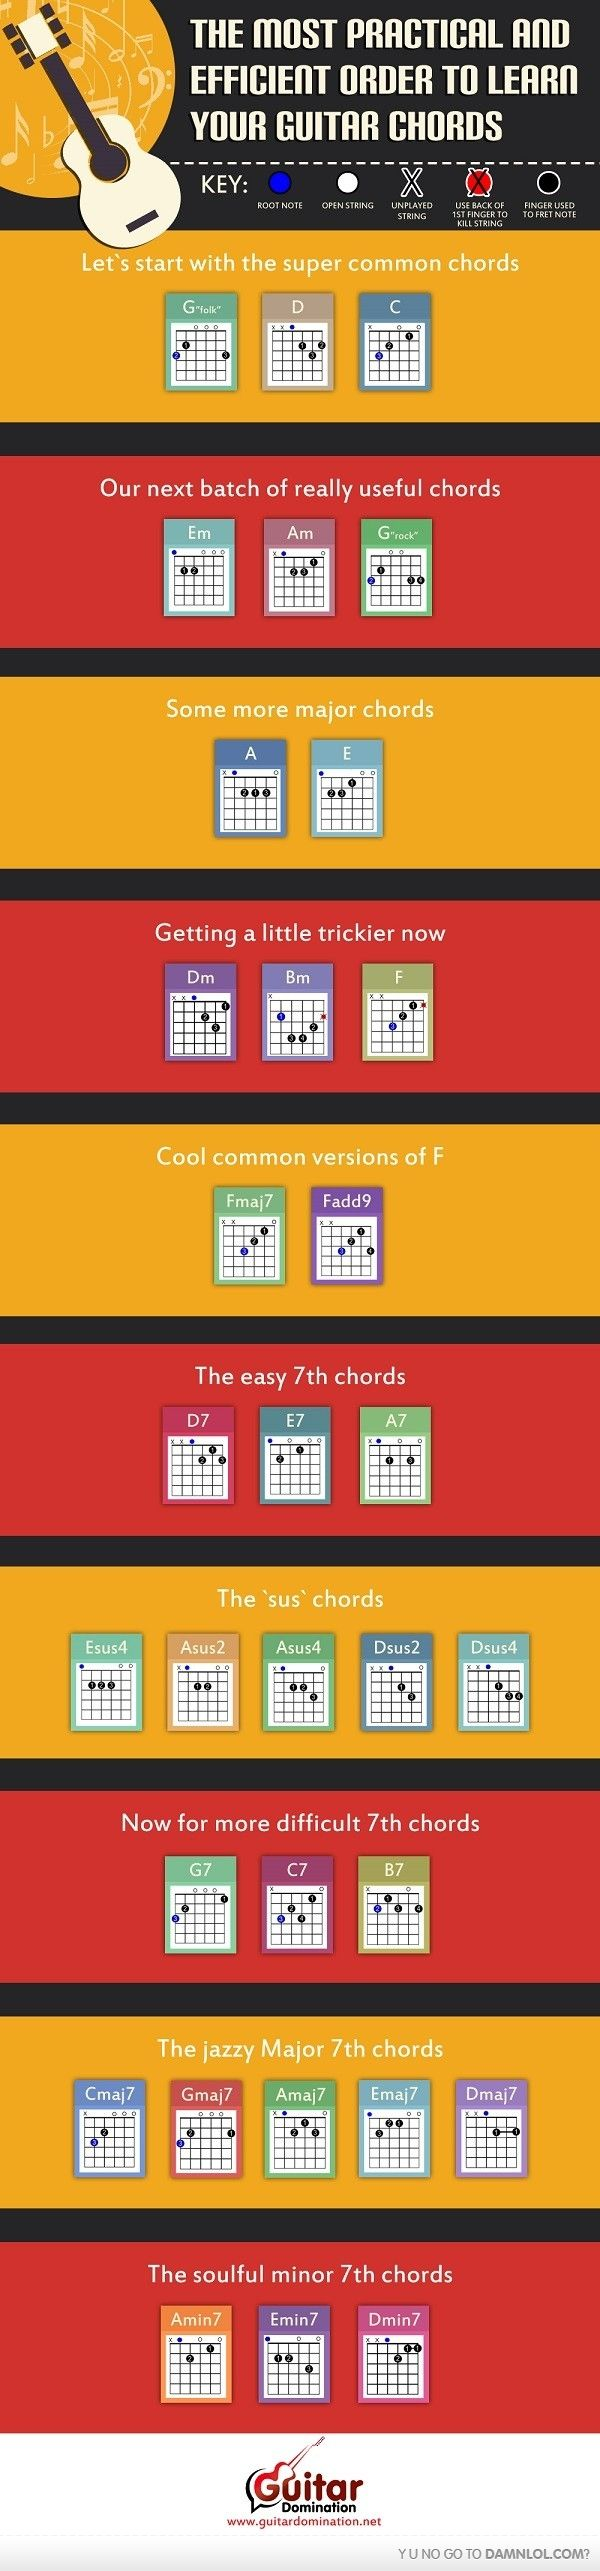 Doe a deer guitar chords gallery guitar chords examples 115 best things for my wall images on pinterest traditional essential chords every guitarist should know hexwebz Image collections